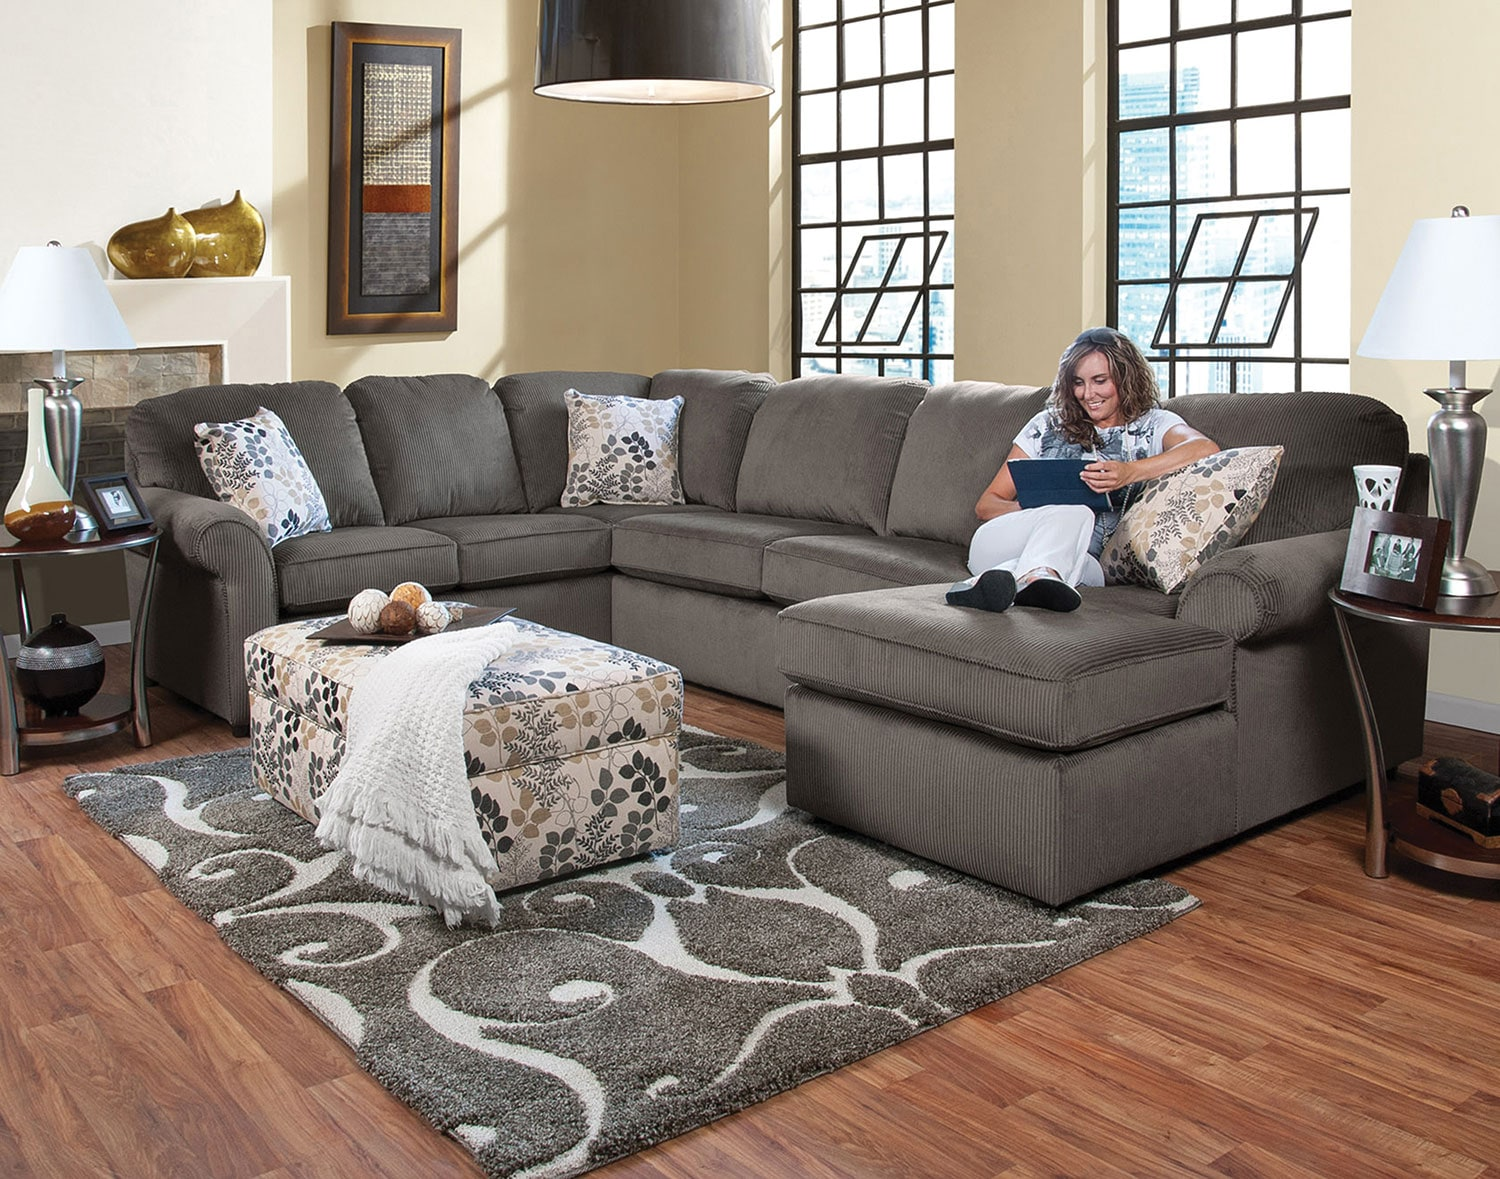 Walnut 3-Piece Right-Facing Sectional - Gray